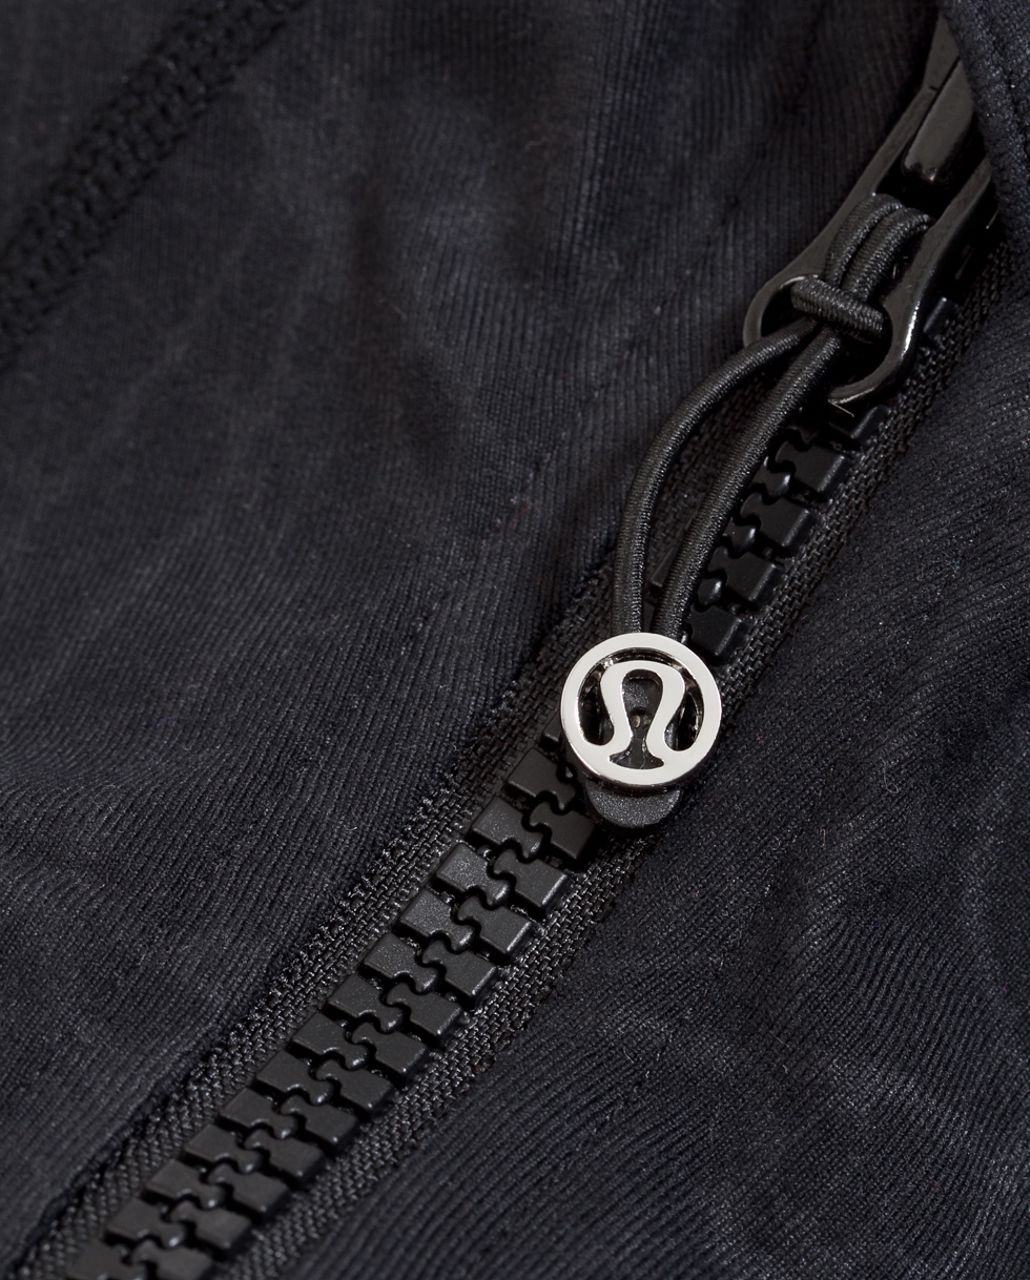 Lululemon Define Jacket - Black Glacier Lace Embossed /  Black